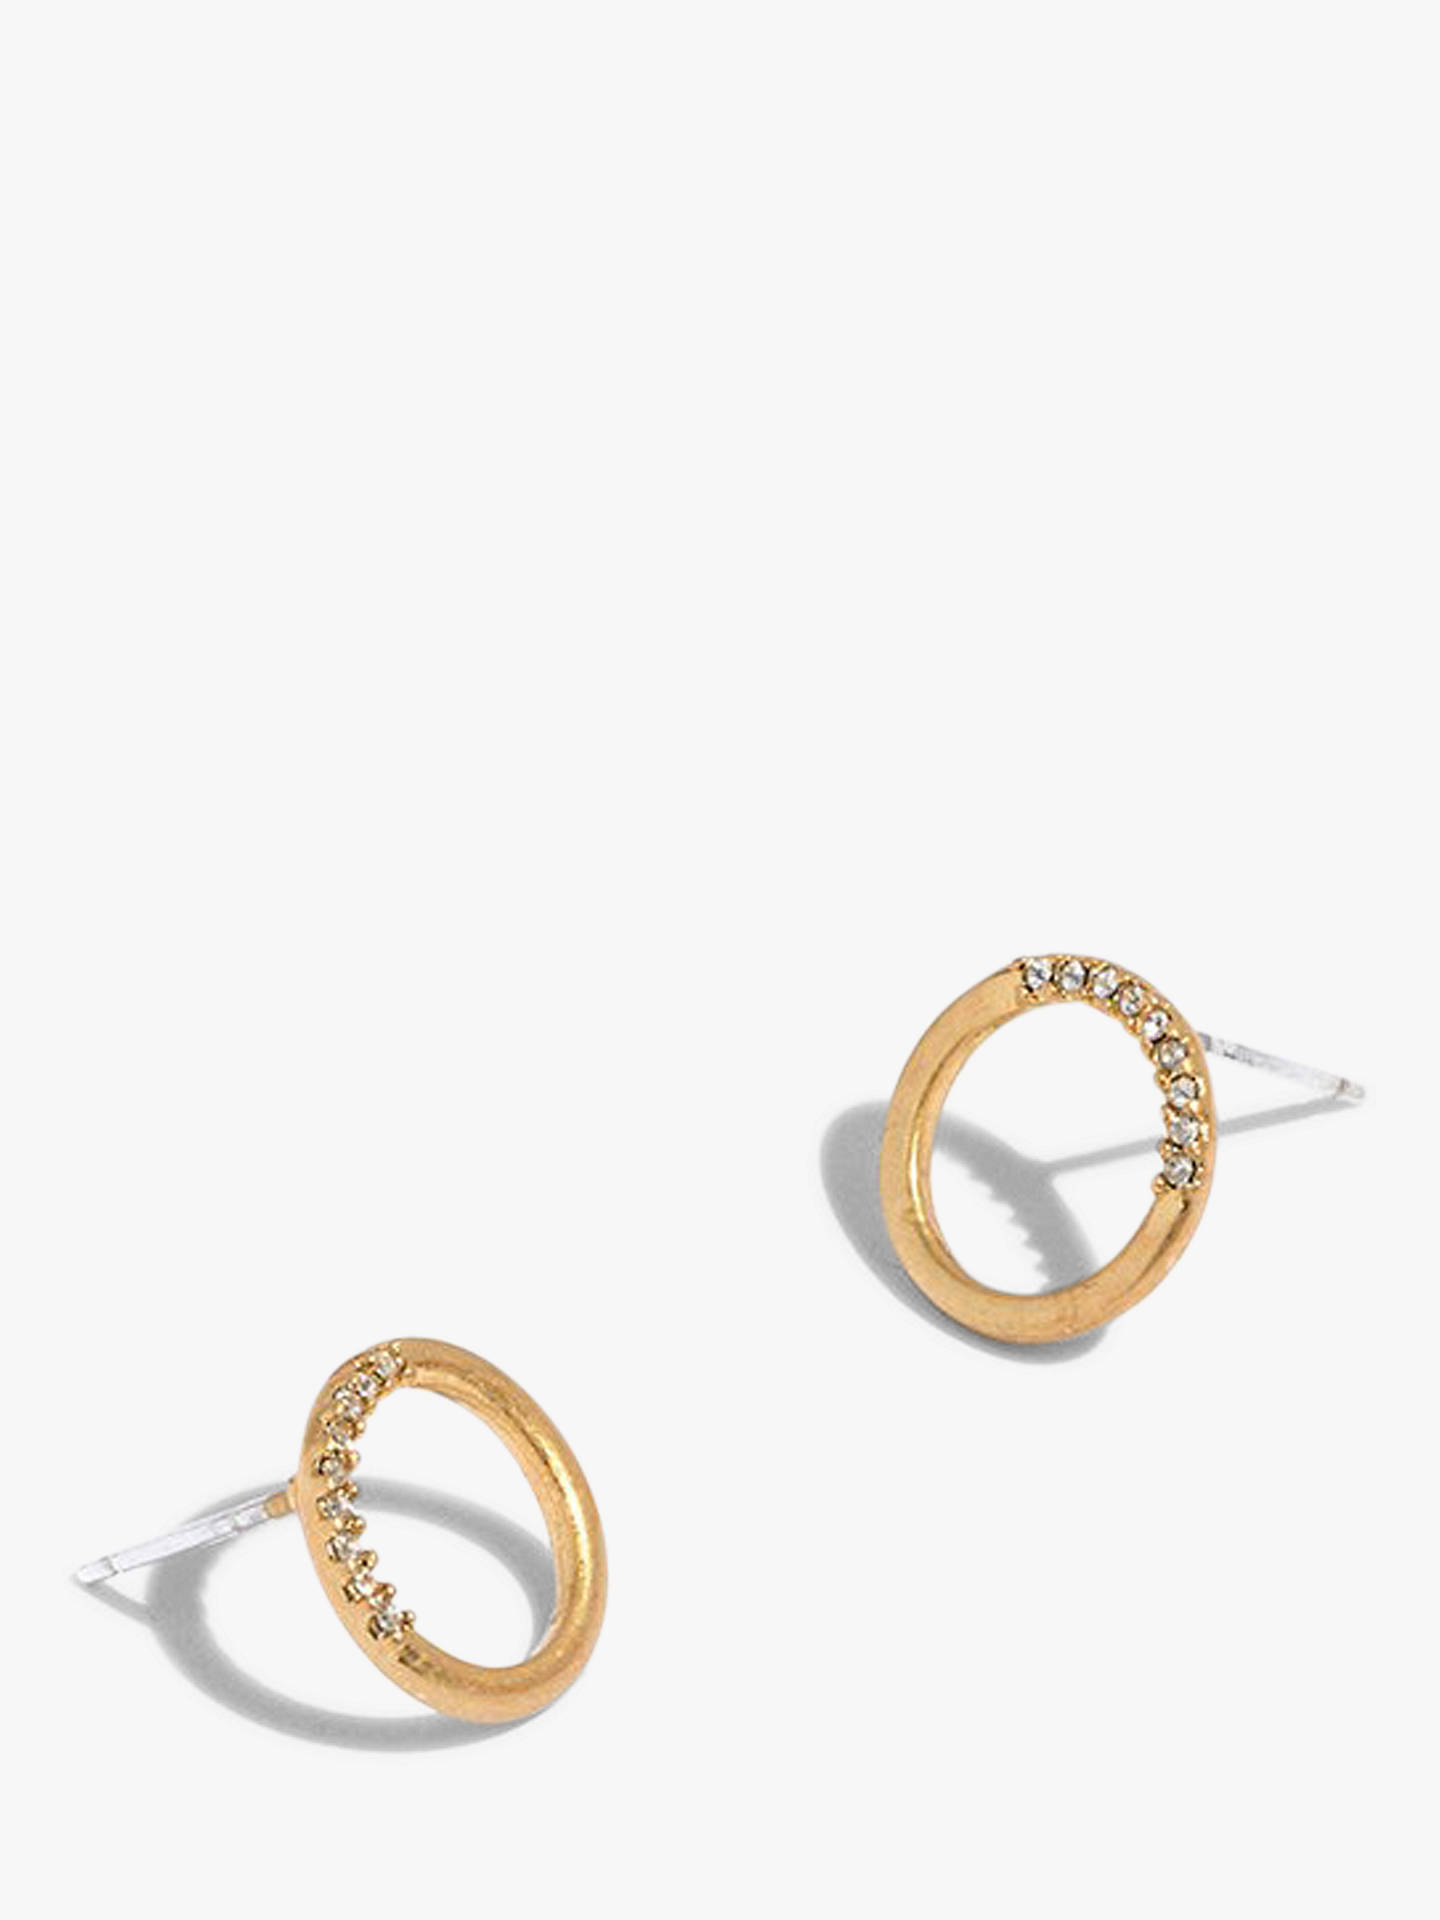 713001674 Buy Madewell Pave Circle Stud Earrings, Vintage Gold Online at johnlewis.com